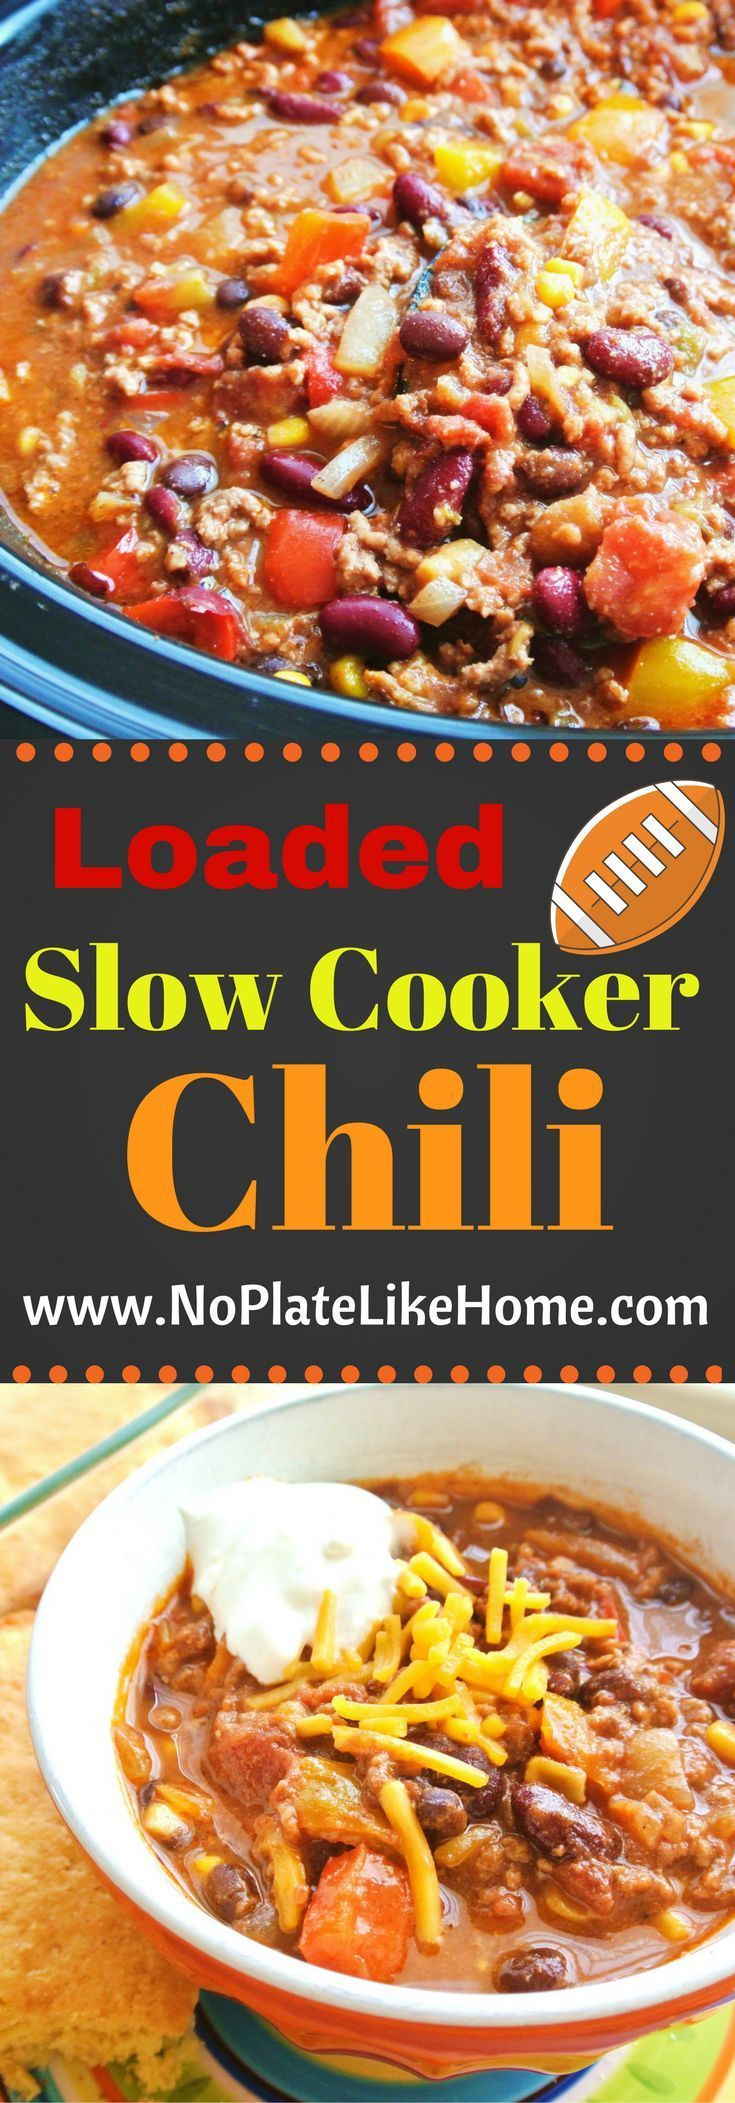 A Tasty Homemade And Easy 5 Hr Slow Cooker Chili Loaded With Ground Beef Red Kidney Beans Black Beans Red Slow Cooker Chili Recipe Slow Cooker Chili Recipes